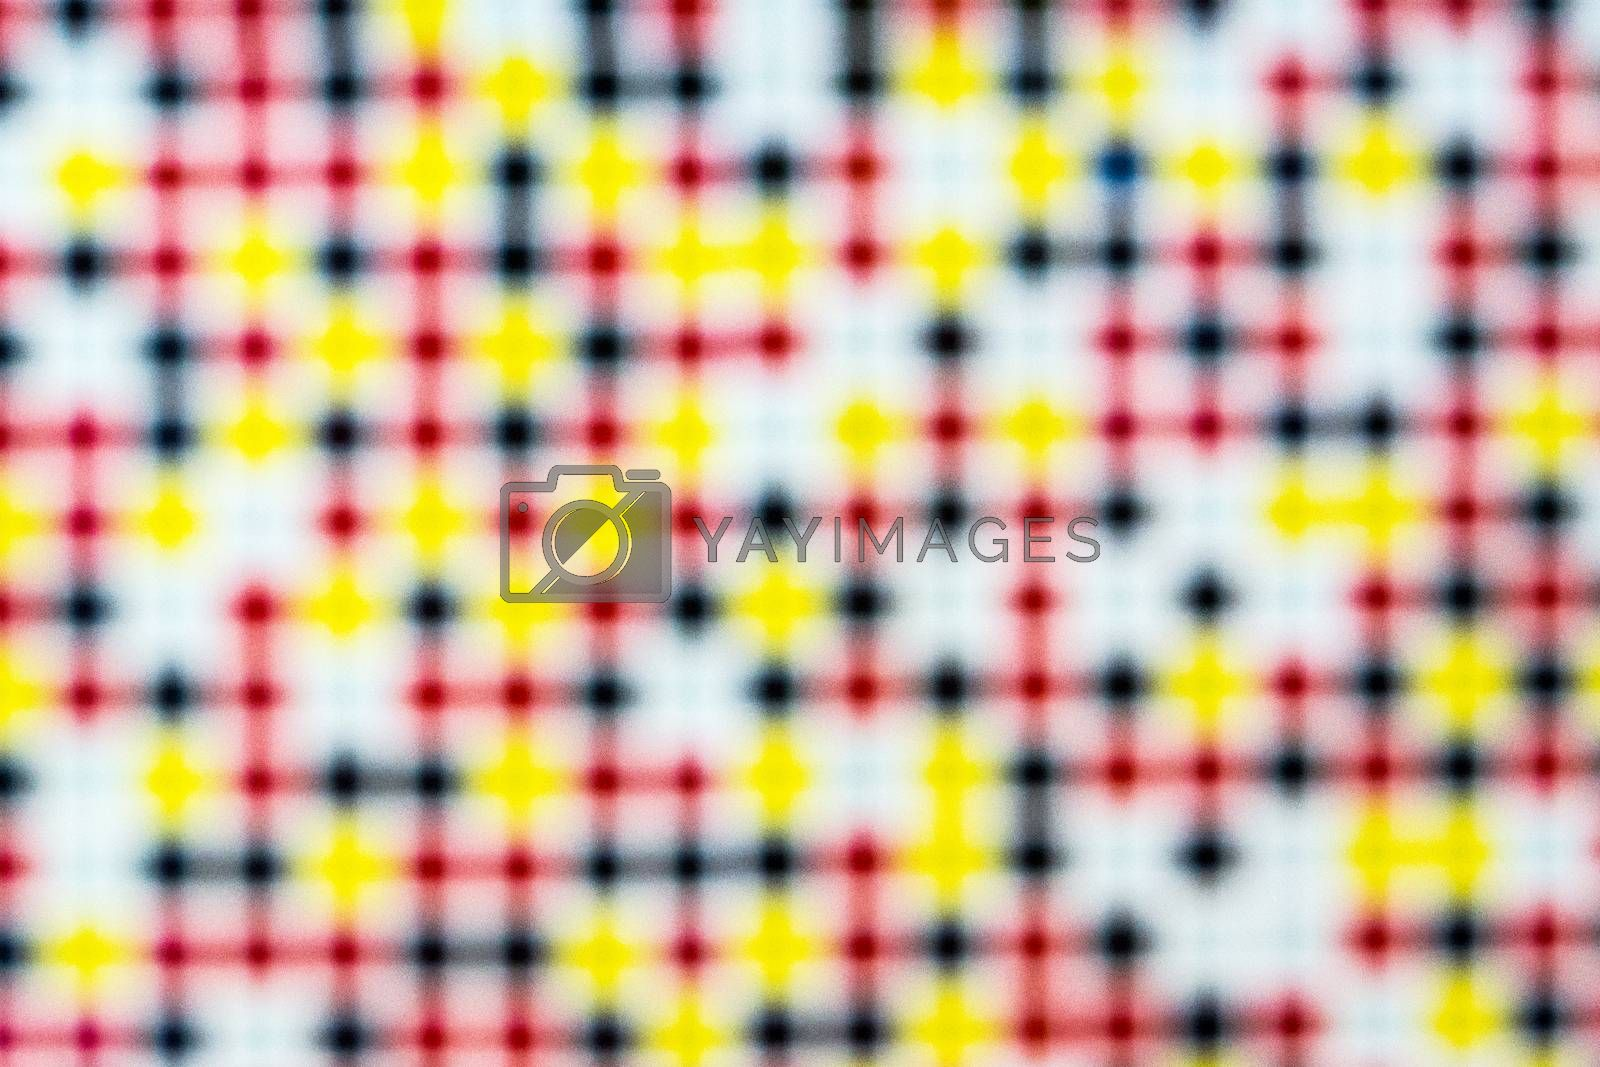 Royalty free image of abstract background by nattapatt